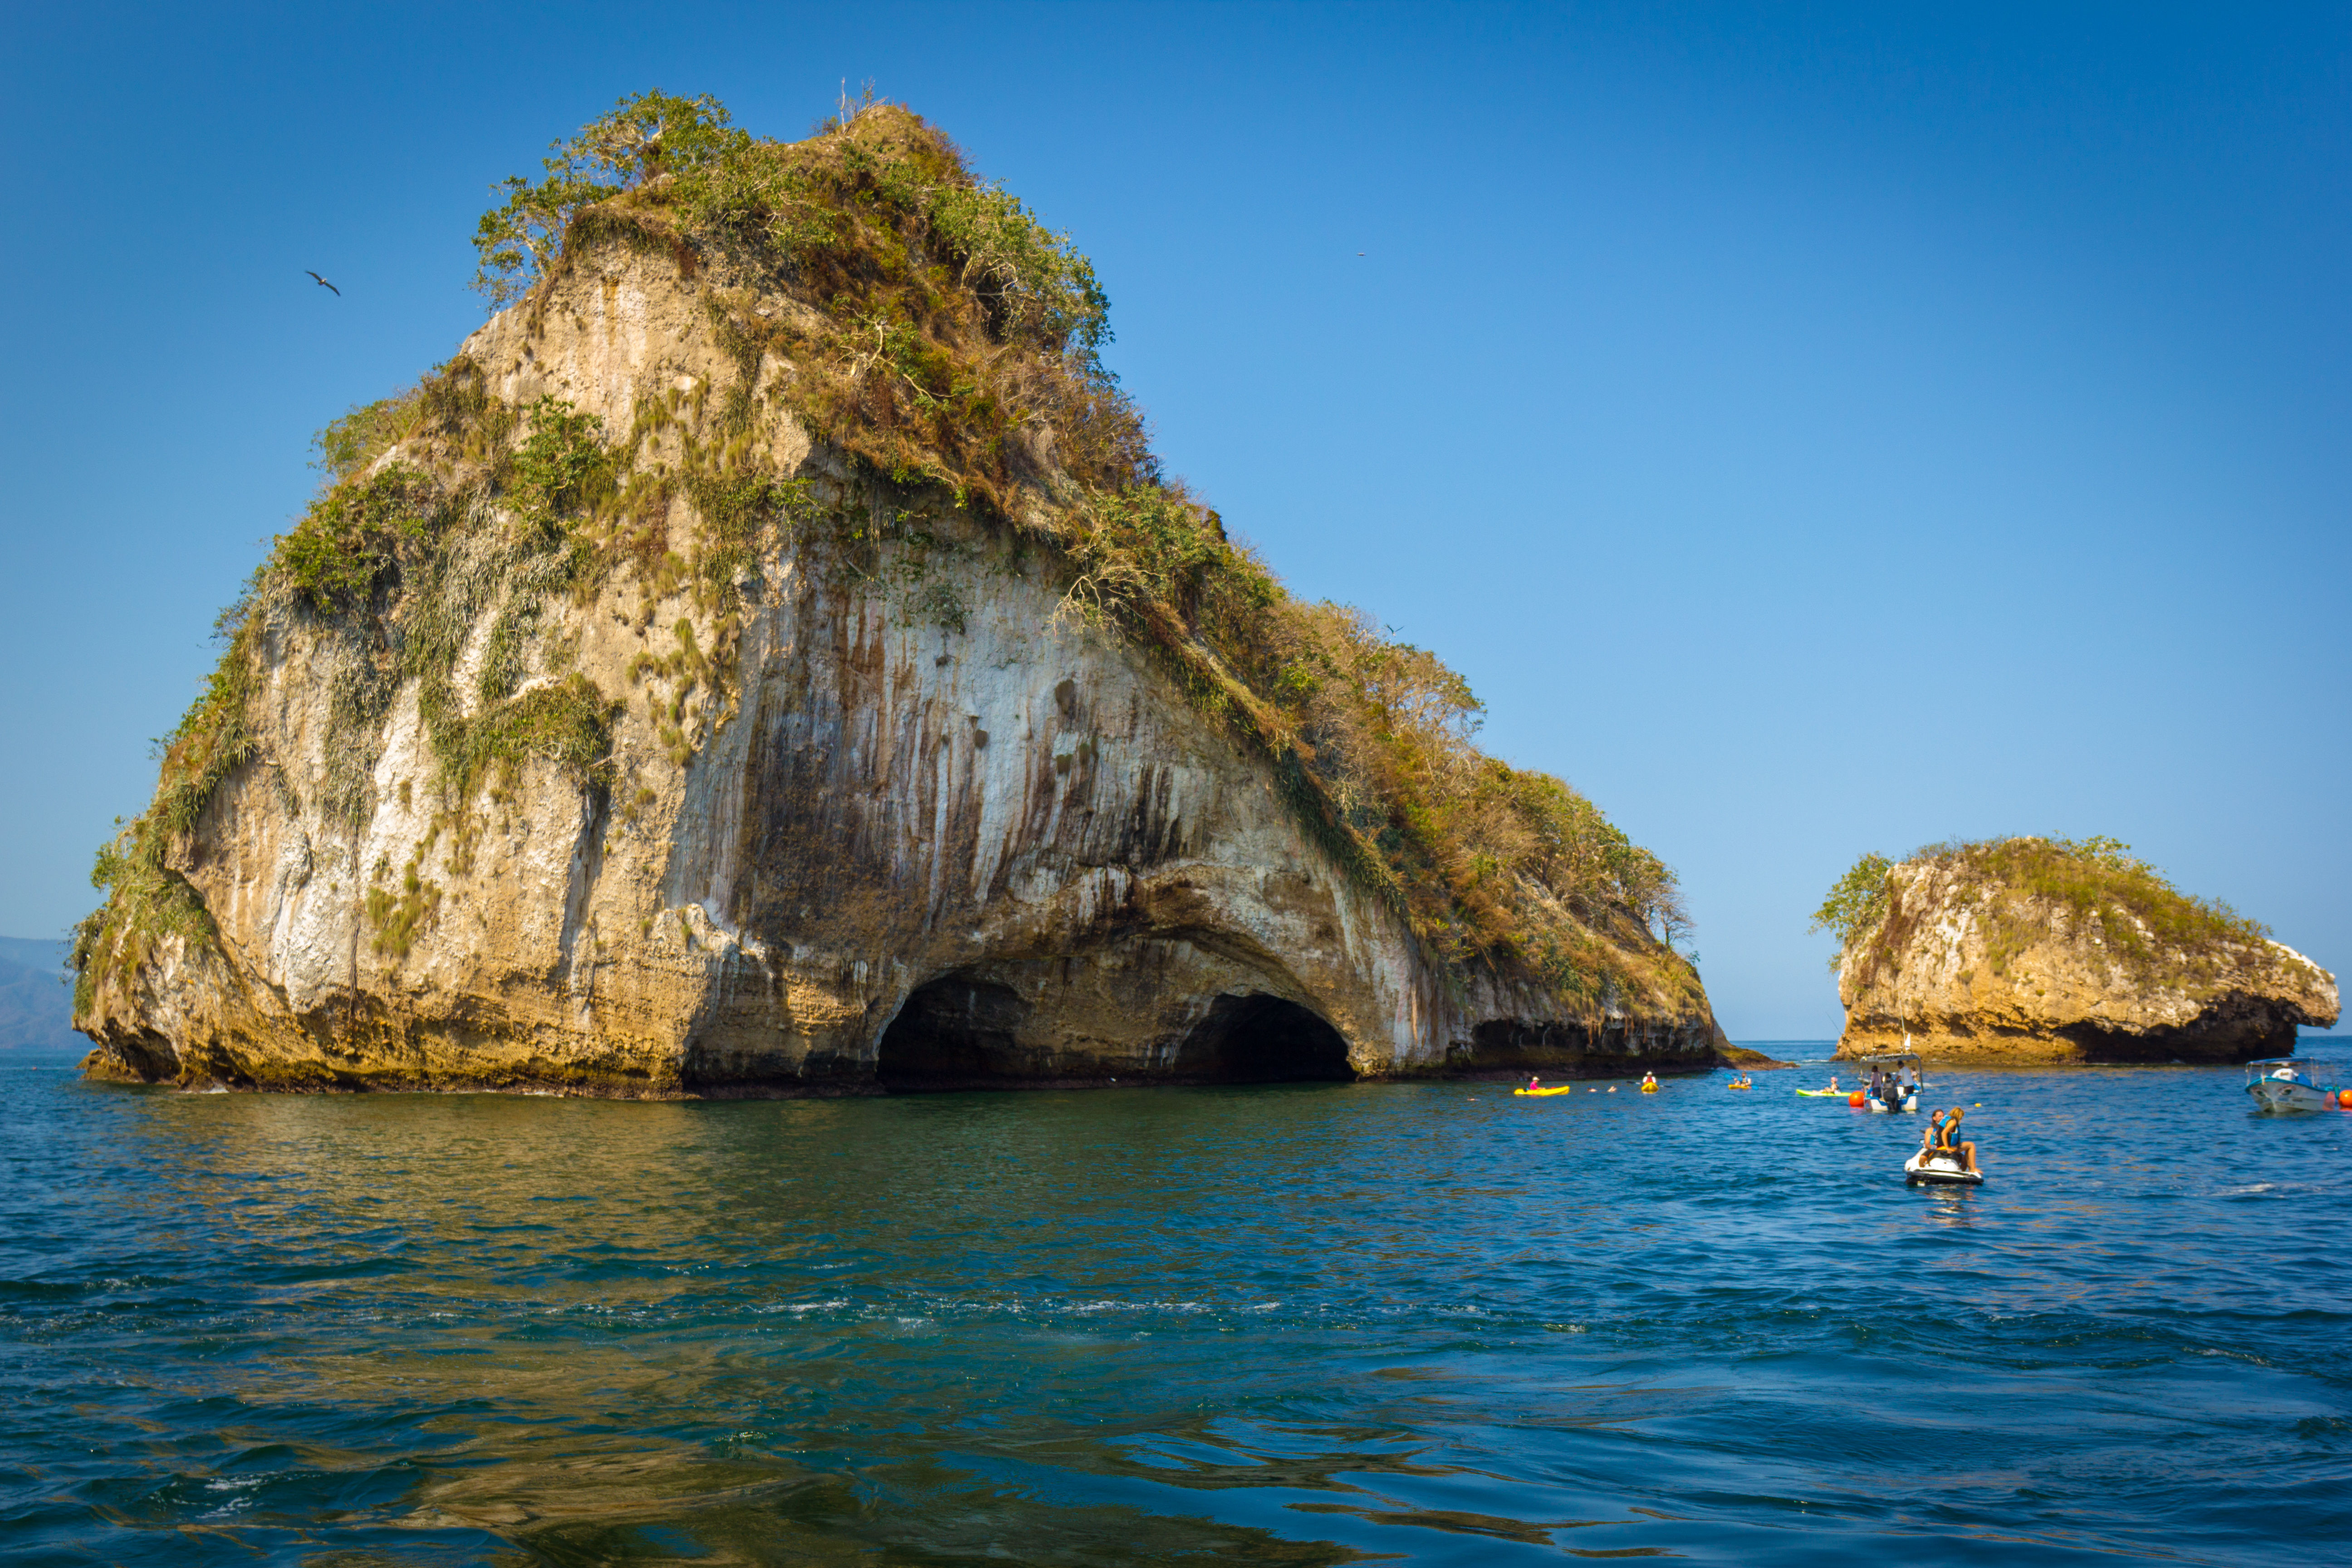 A big and small rock islands surrounded by blue water and kayakers in Jalisco, Mexico.